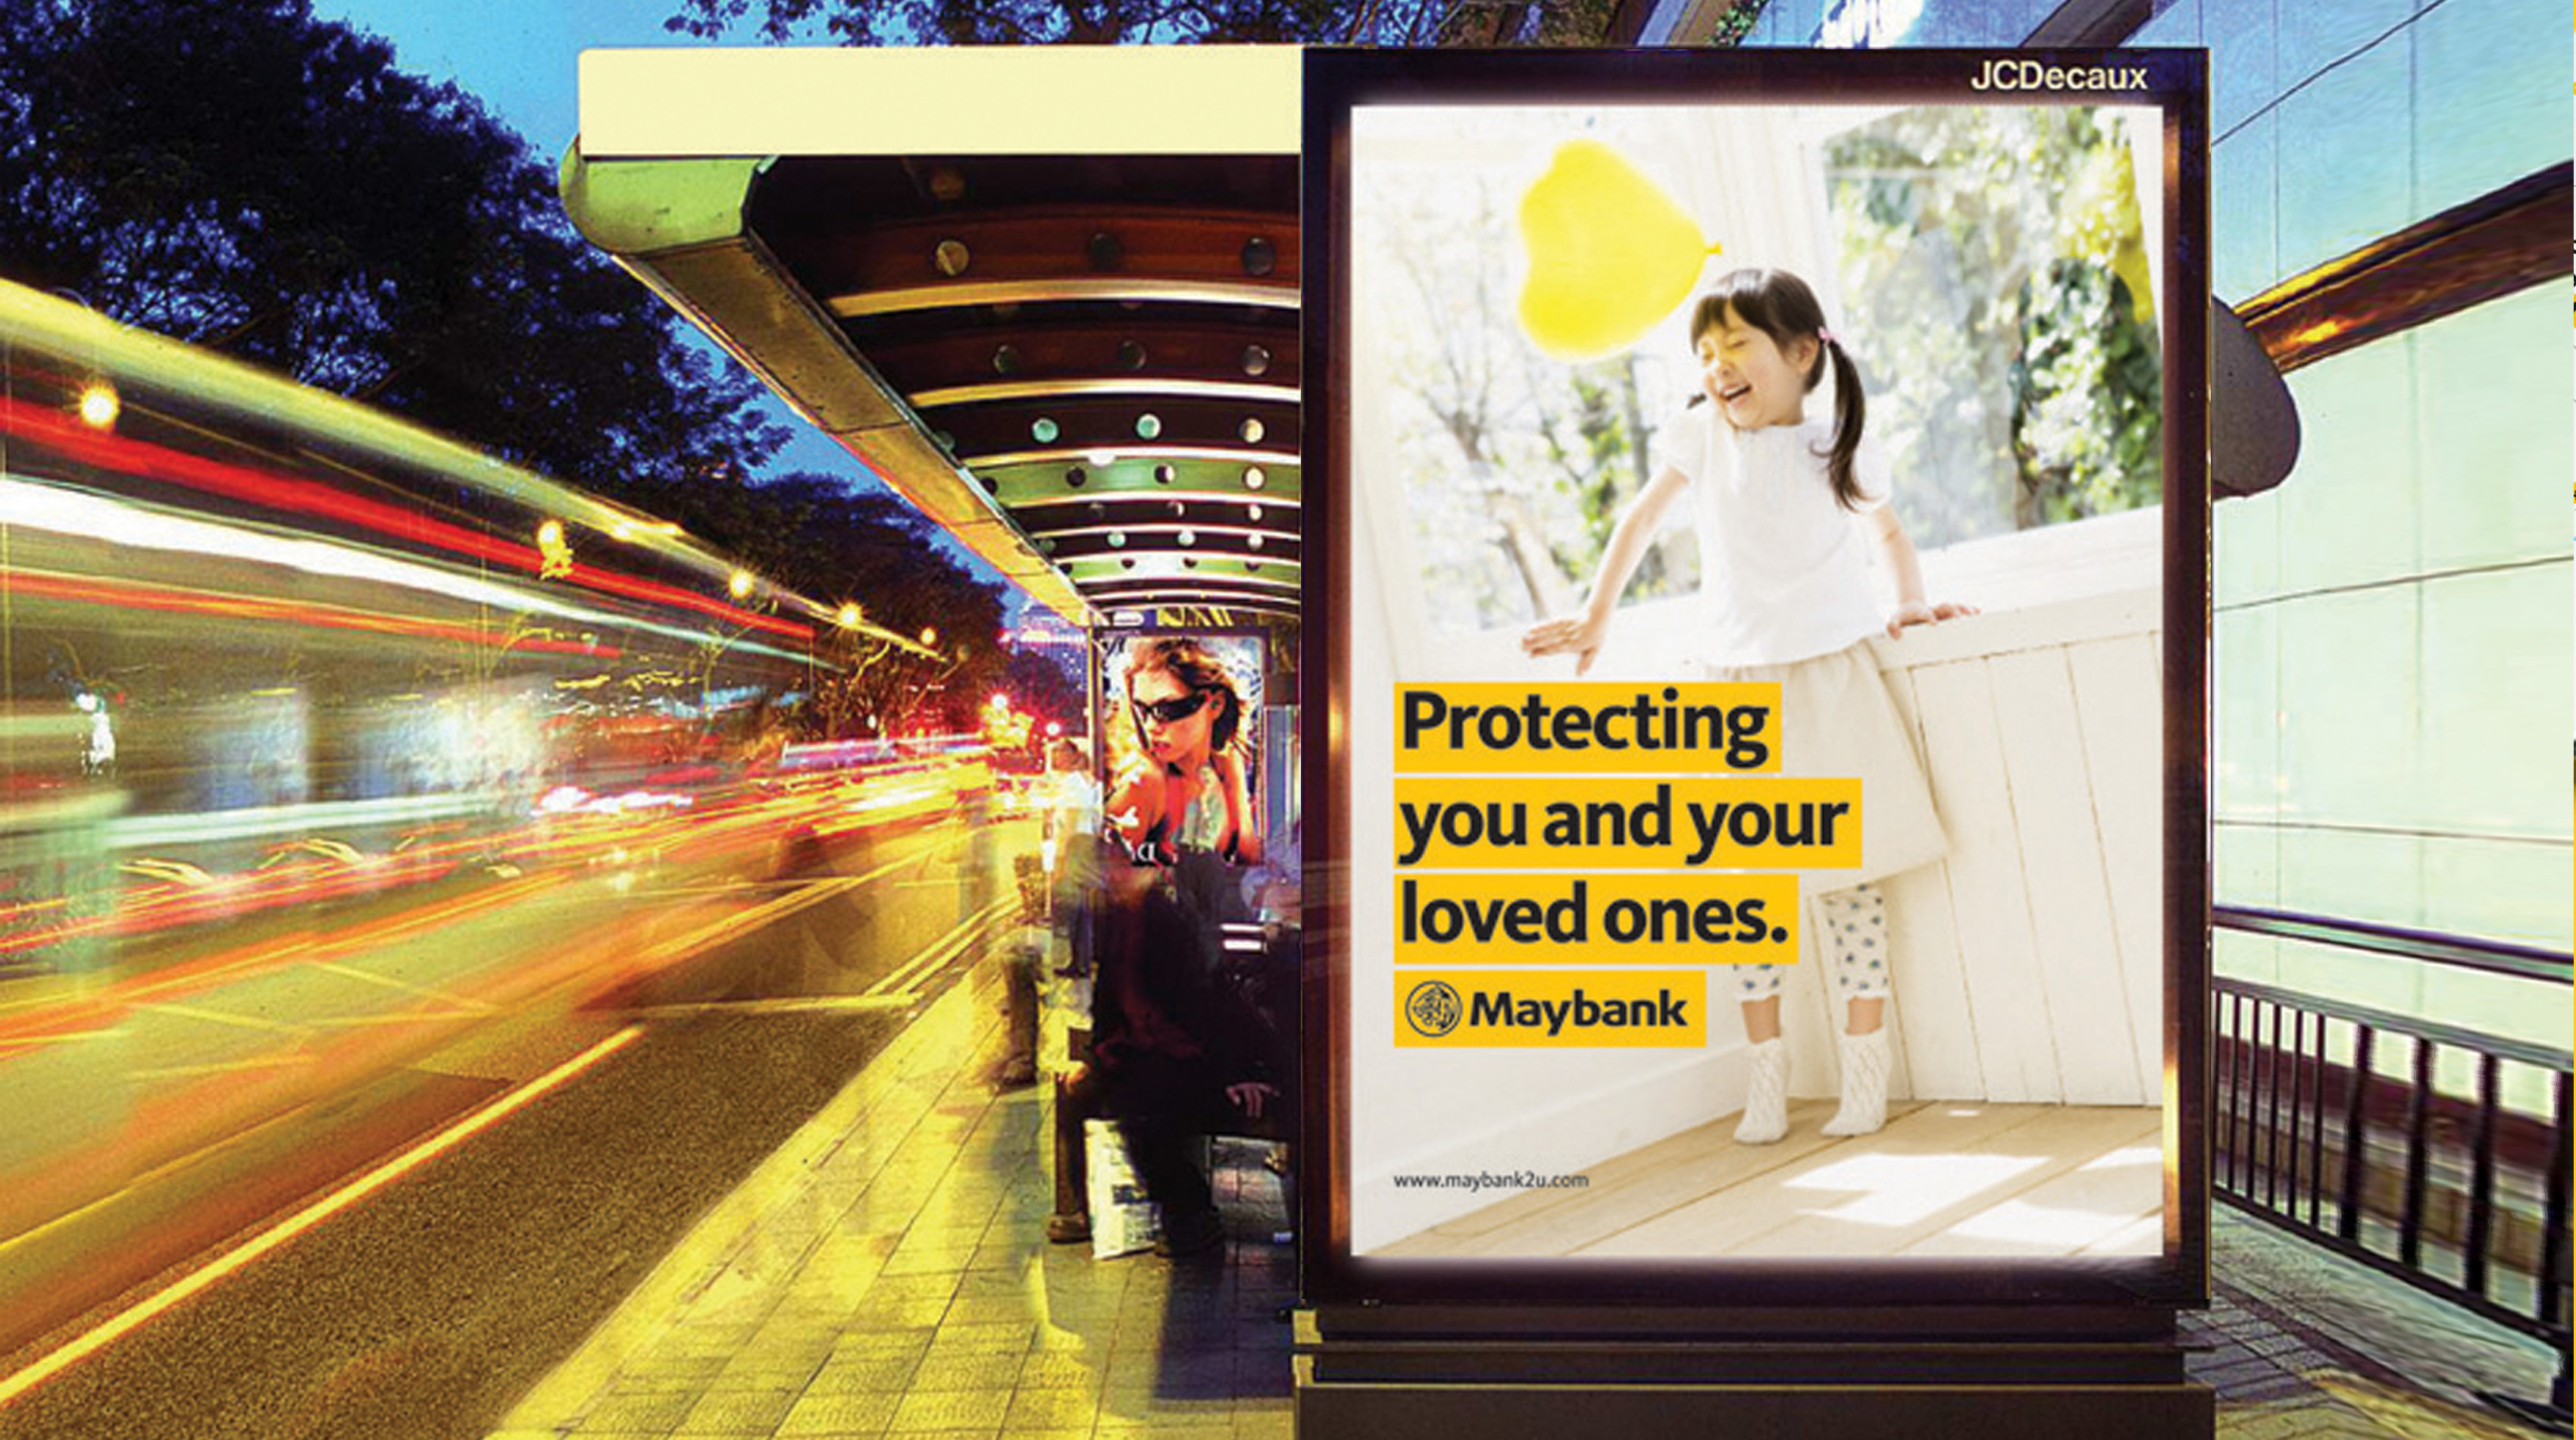 https://bonseydesign.com/wp-content/uploads/2020/05/Maybank-WEB-page-13.jpg